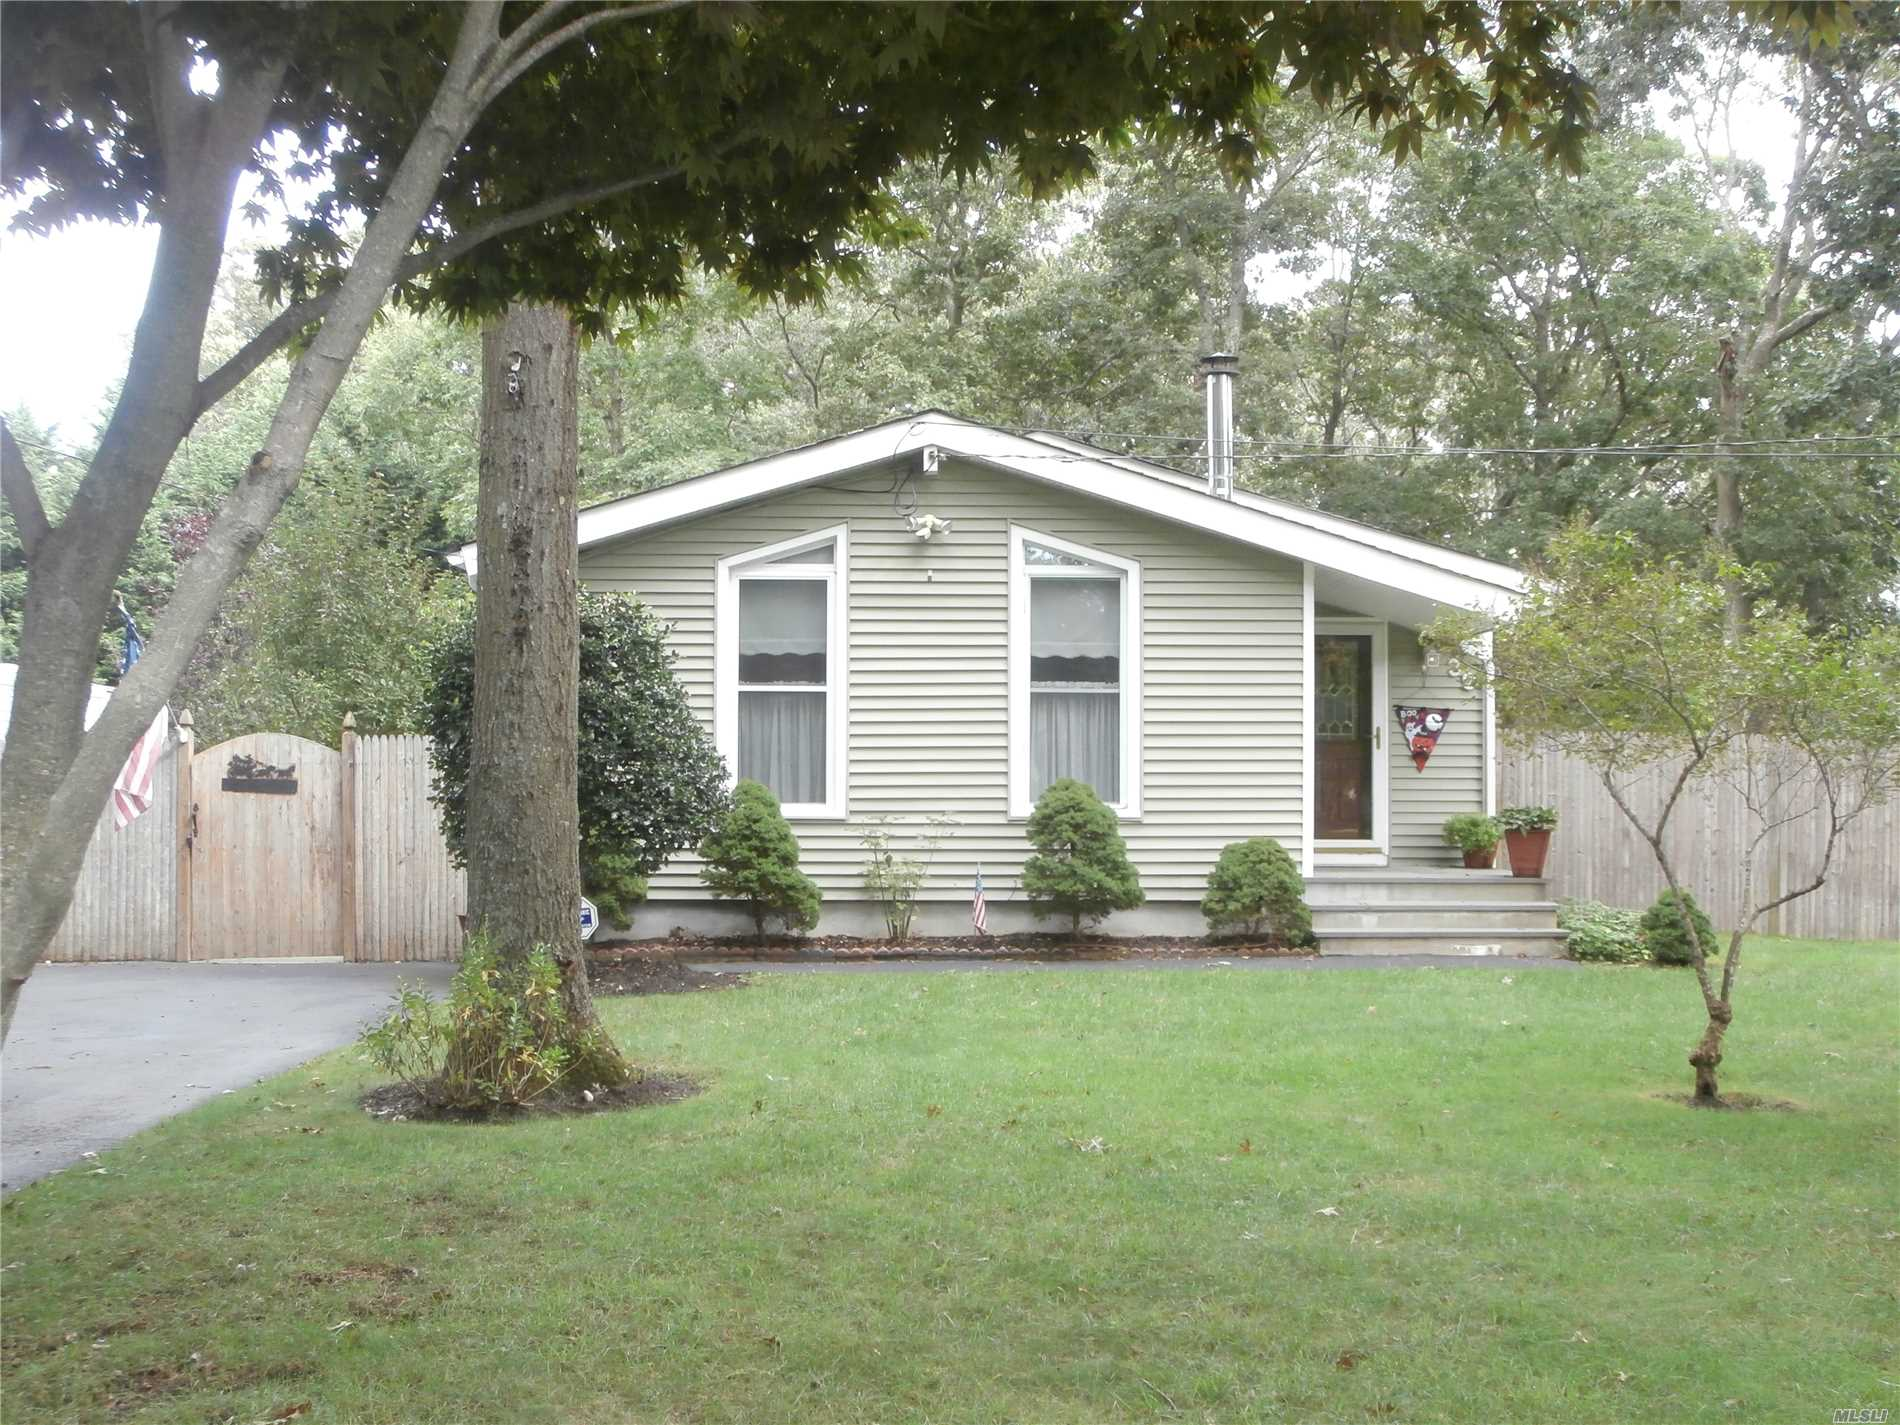 Beautifully Maintained, 3 Bedrooms/1.5 Bathroom Ranch On Corner Property. Also Features Living Room W/Wood Burning Stove & Vaulted Ceilings, Eat-In Kitchen, Hardwood Floors Throughout, Alarm System, Full Basement, Fenced Back Yard, Low Taxes. Award Winning William Floyd School District.